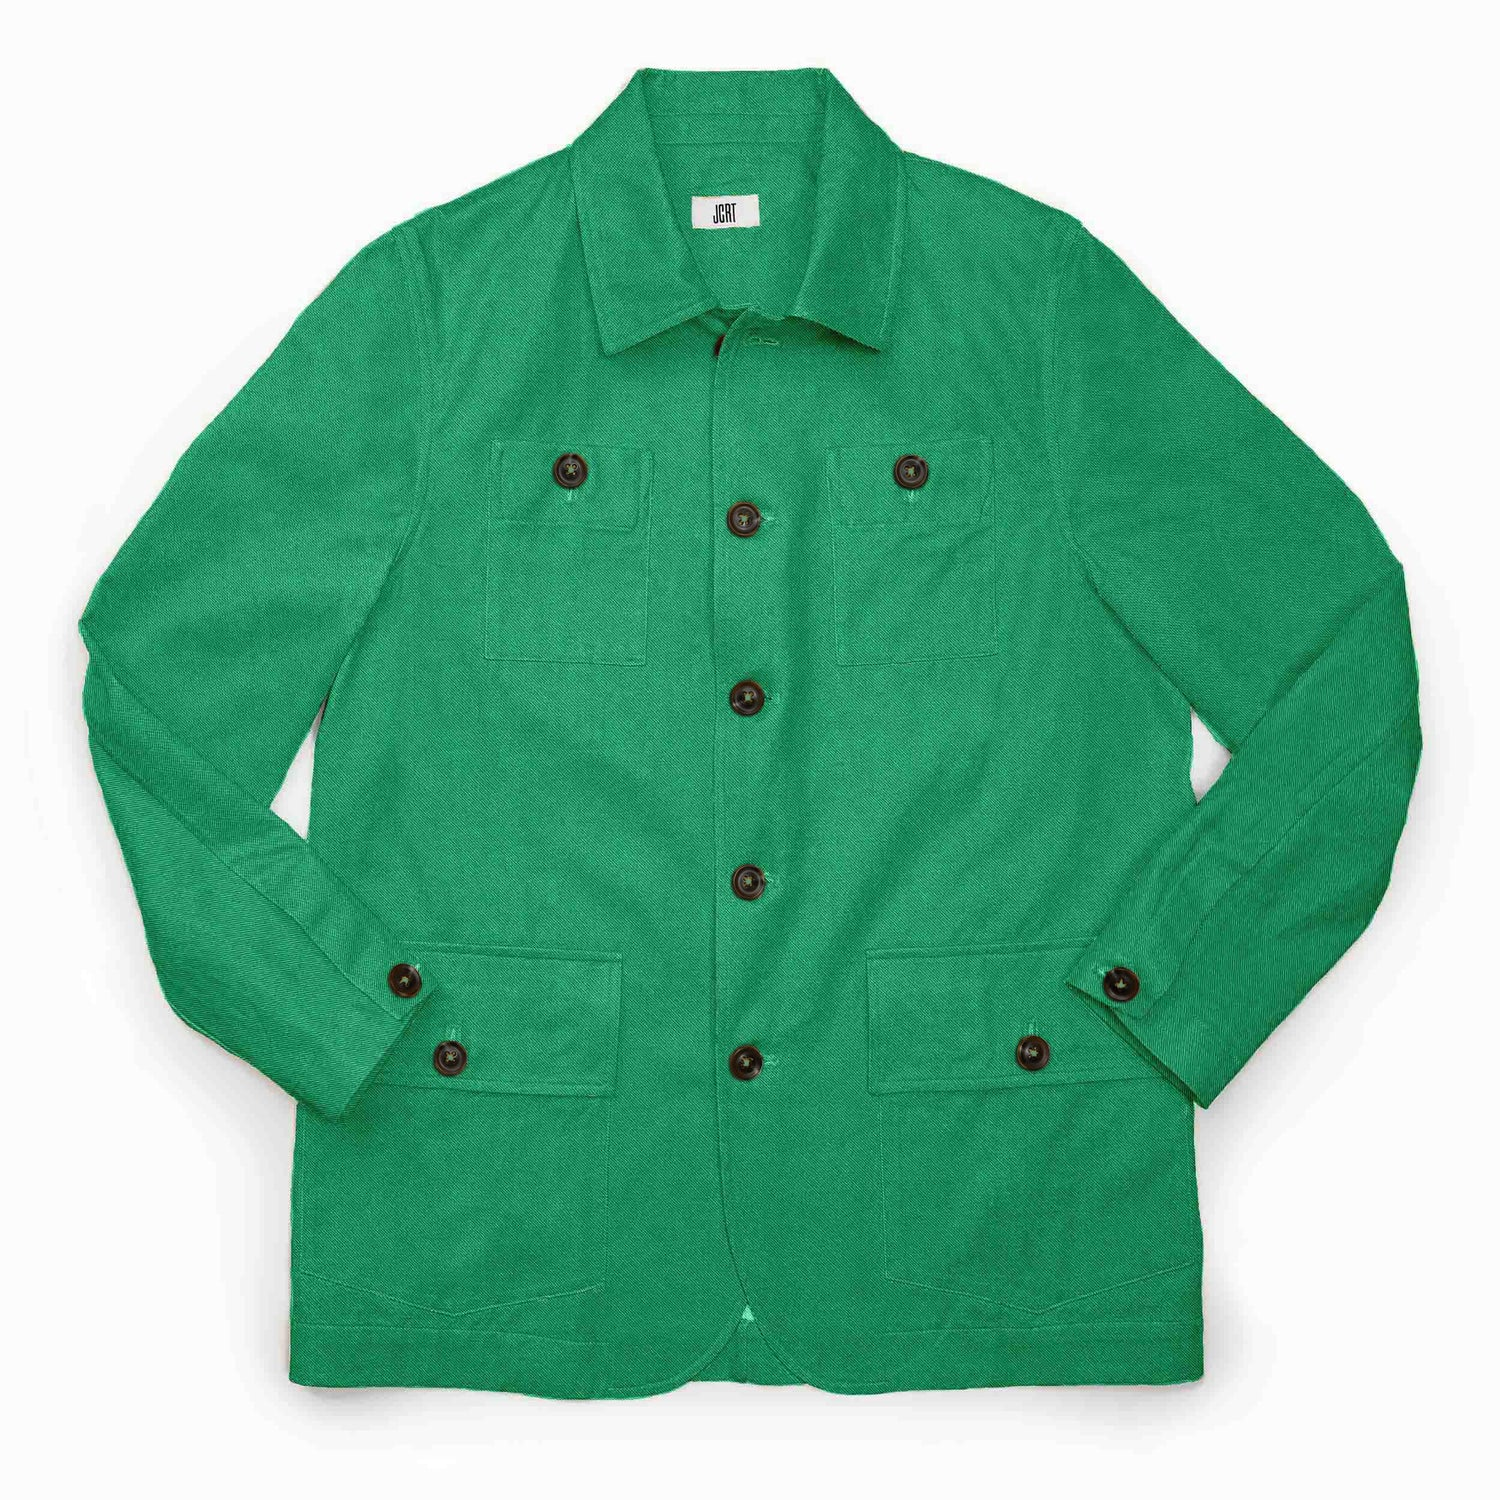 The Lime Green Twill Country Jacket